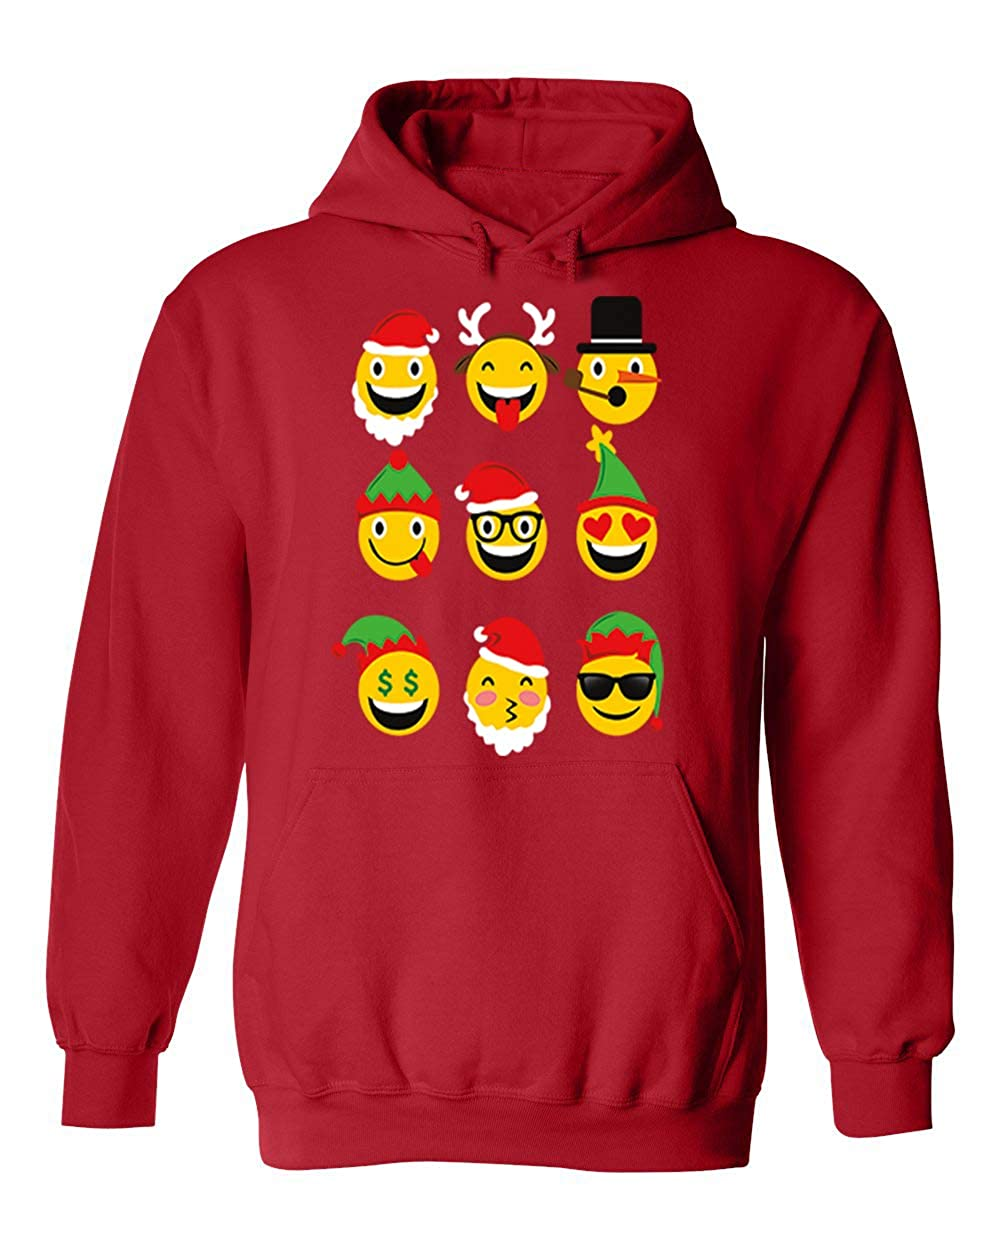 bbd3dd6804f1 Amazon.com  Ugly Christmas All Funny Emoji Faces Unisex Hoodie Hooded   Clothing